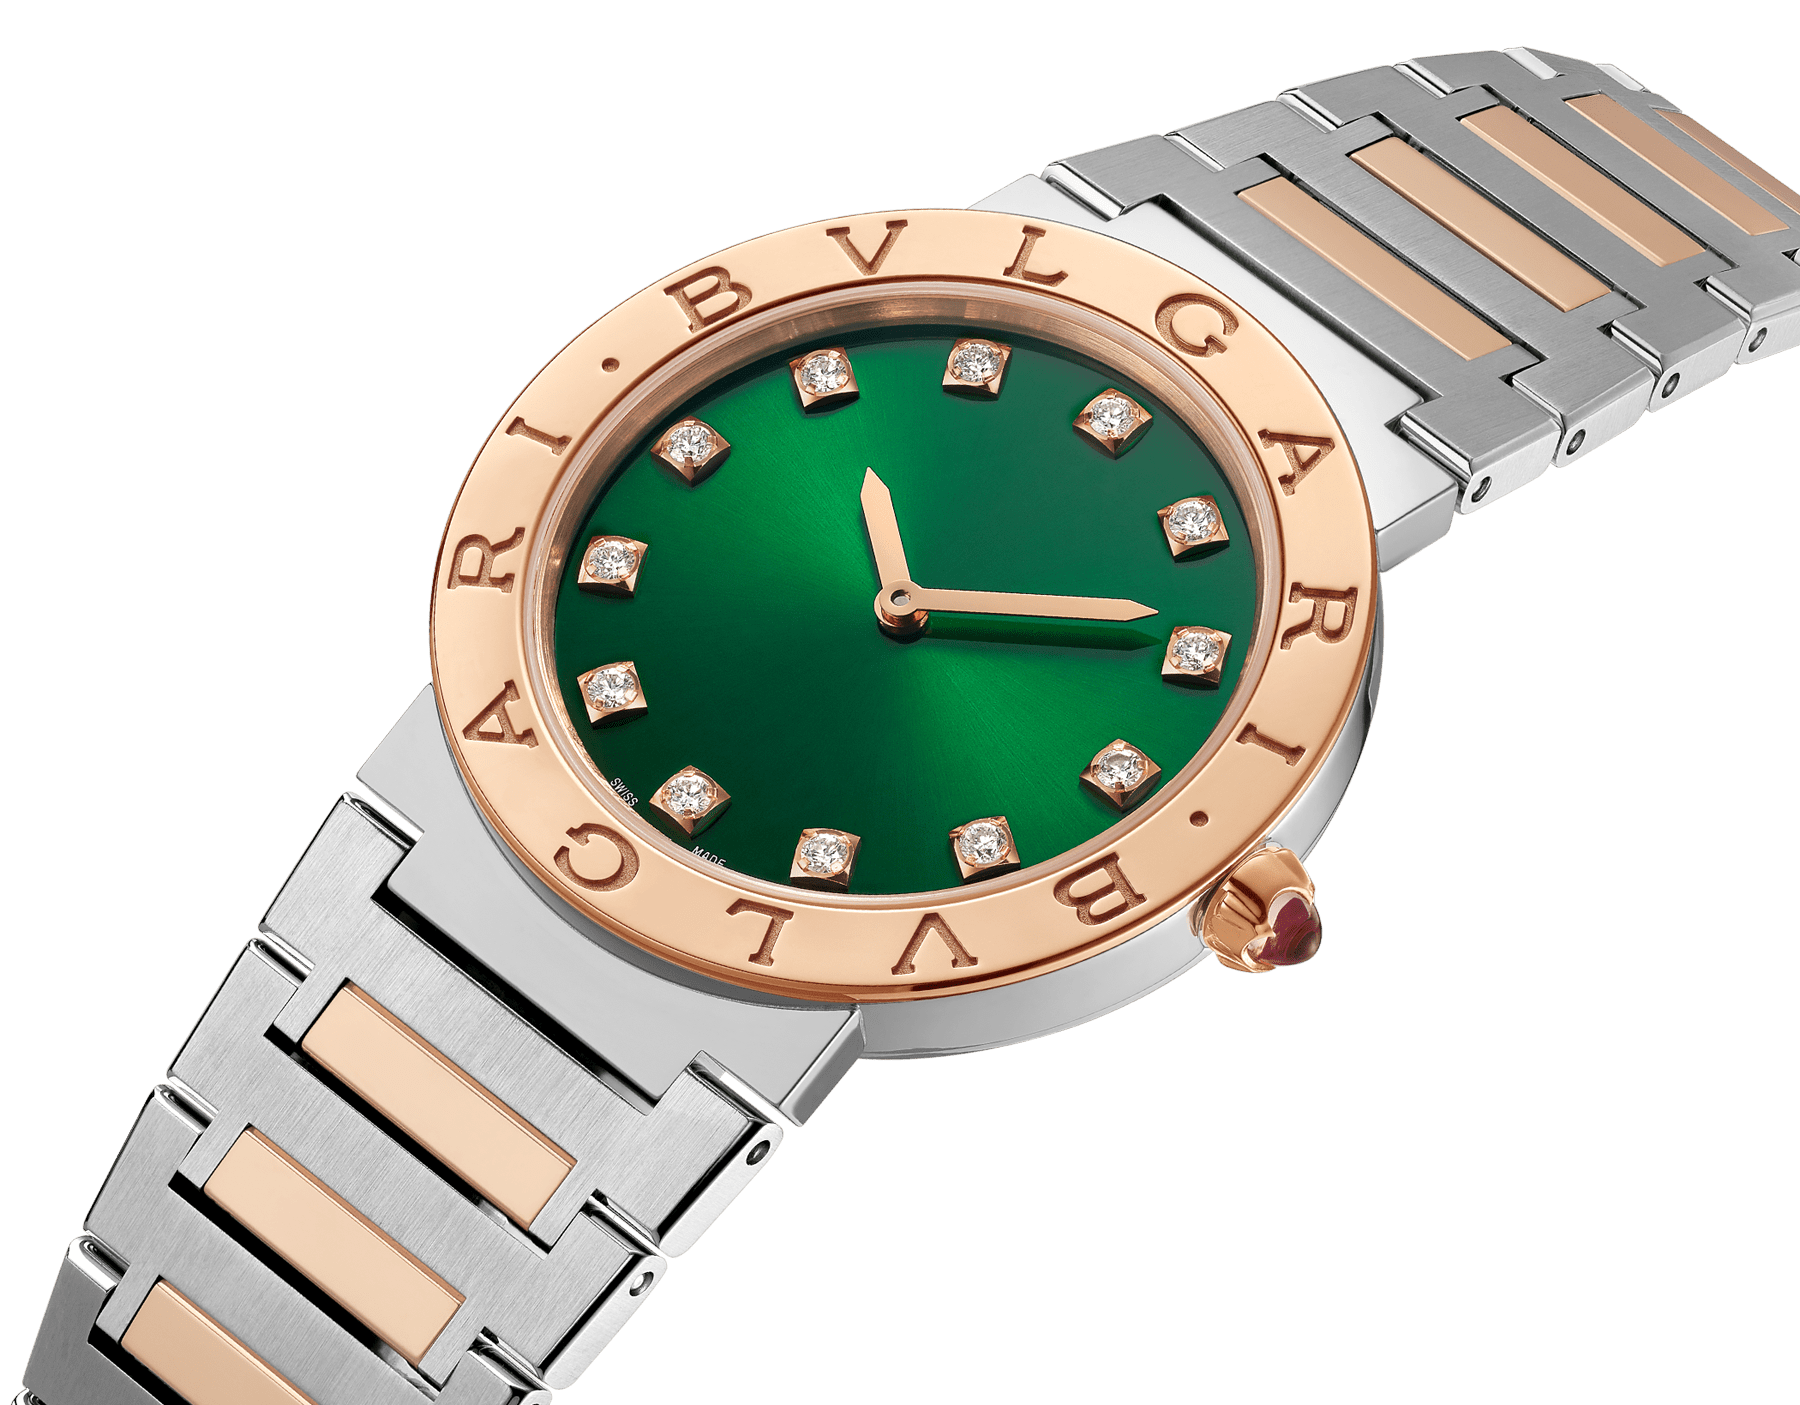 BVLGARI BVLGARI watch in 18 kt rose gold and stainless steel case and bracelet, 18 kt rose gold bezel engraved with double logo, green satiné soleil lacquered dial and diamond indexes 103202 image 2